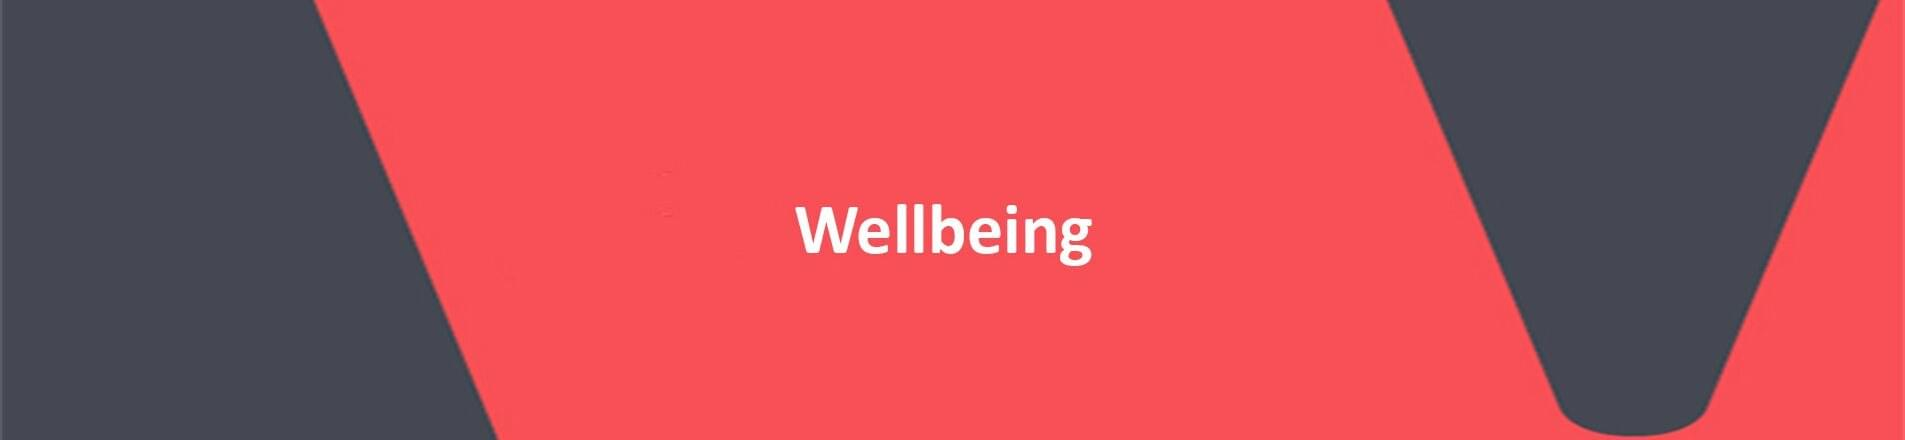 Red background with white text overlaid, spelling Wellbeing.